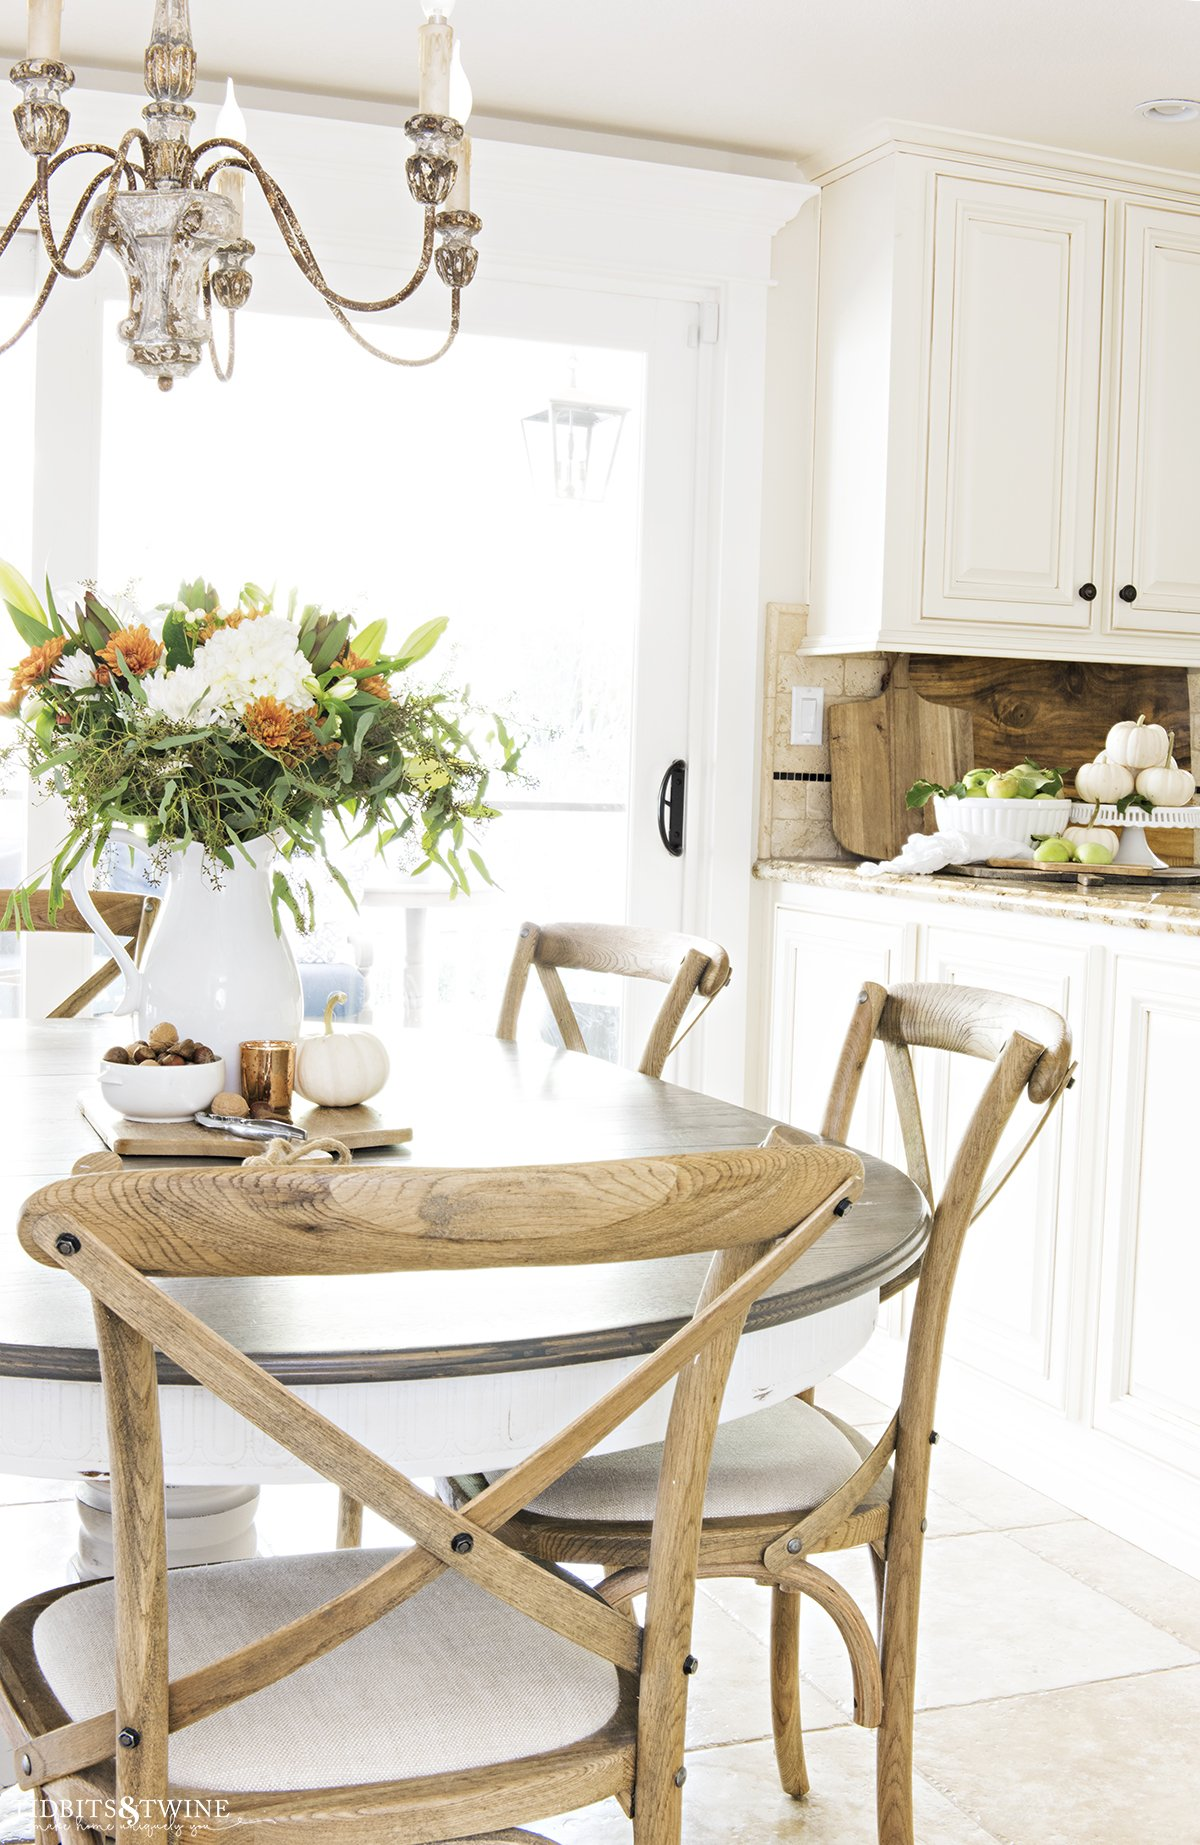 french country fall kitchen decor with table with white pitcher of fall flowers and crossback chairs and bowl of apples and pumpkins on countertop